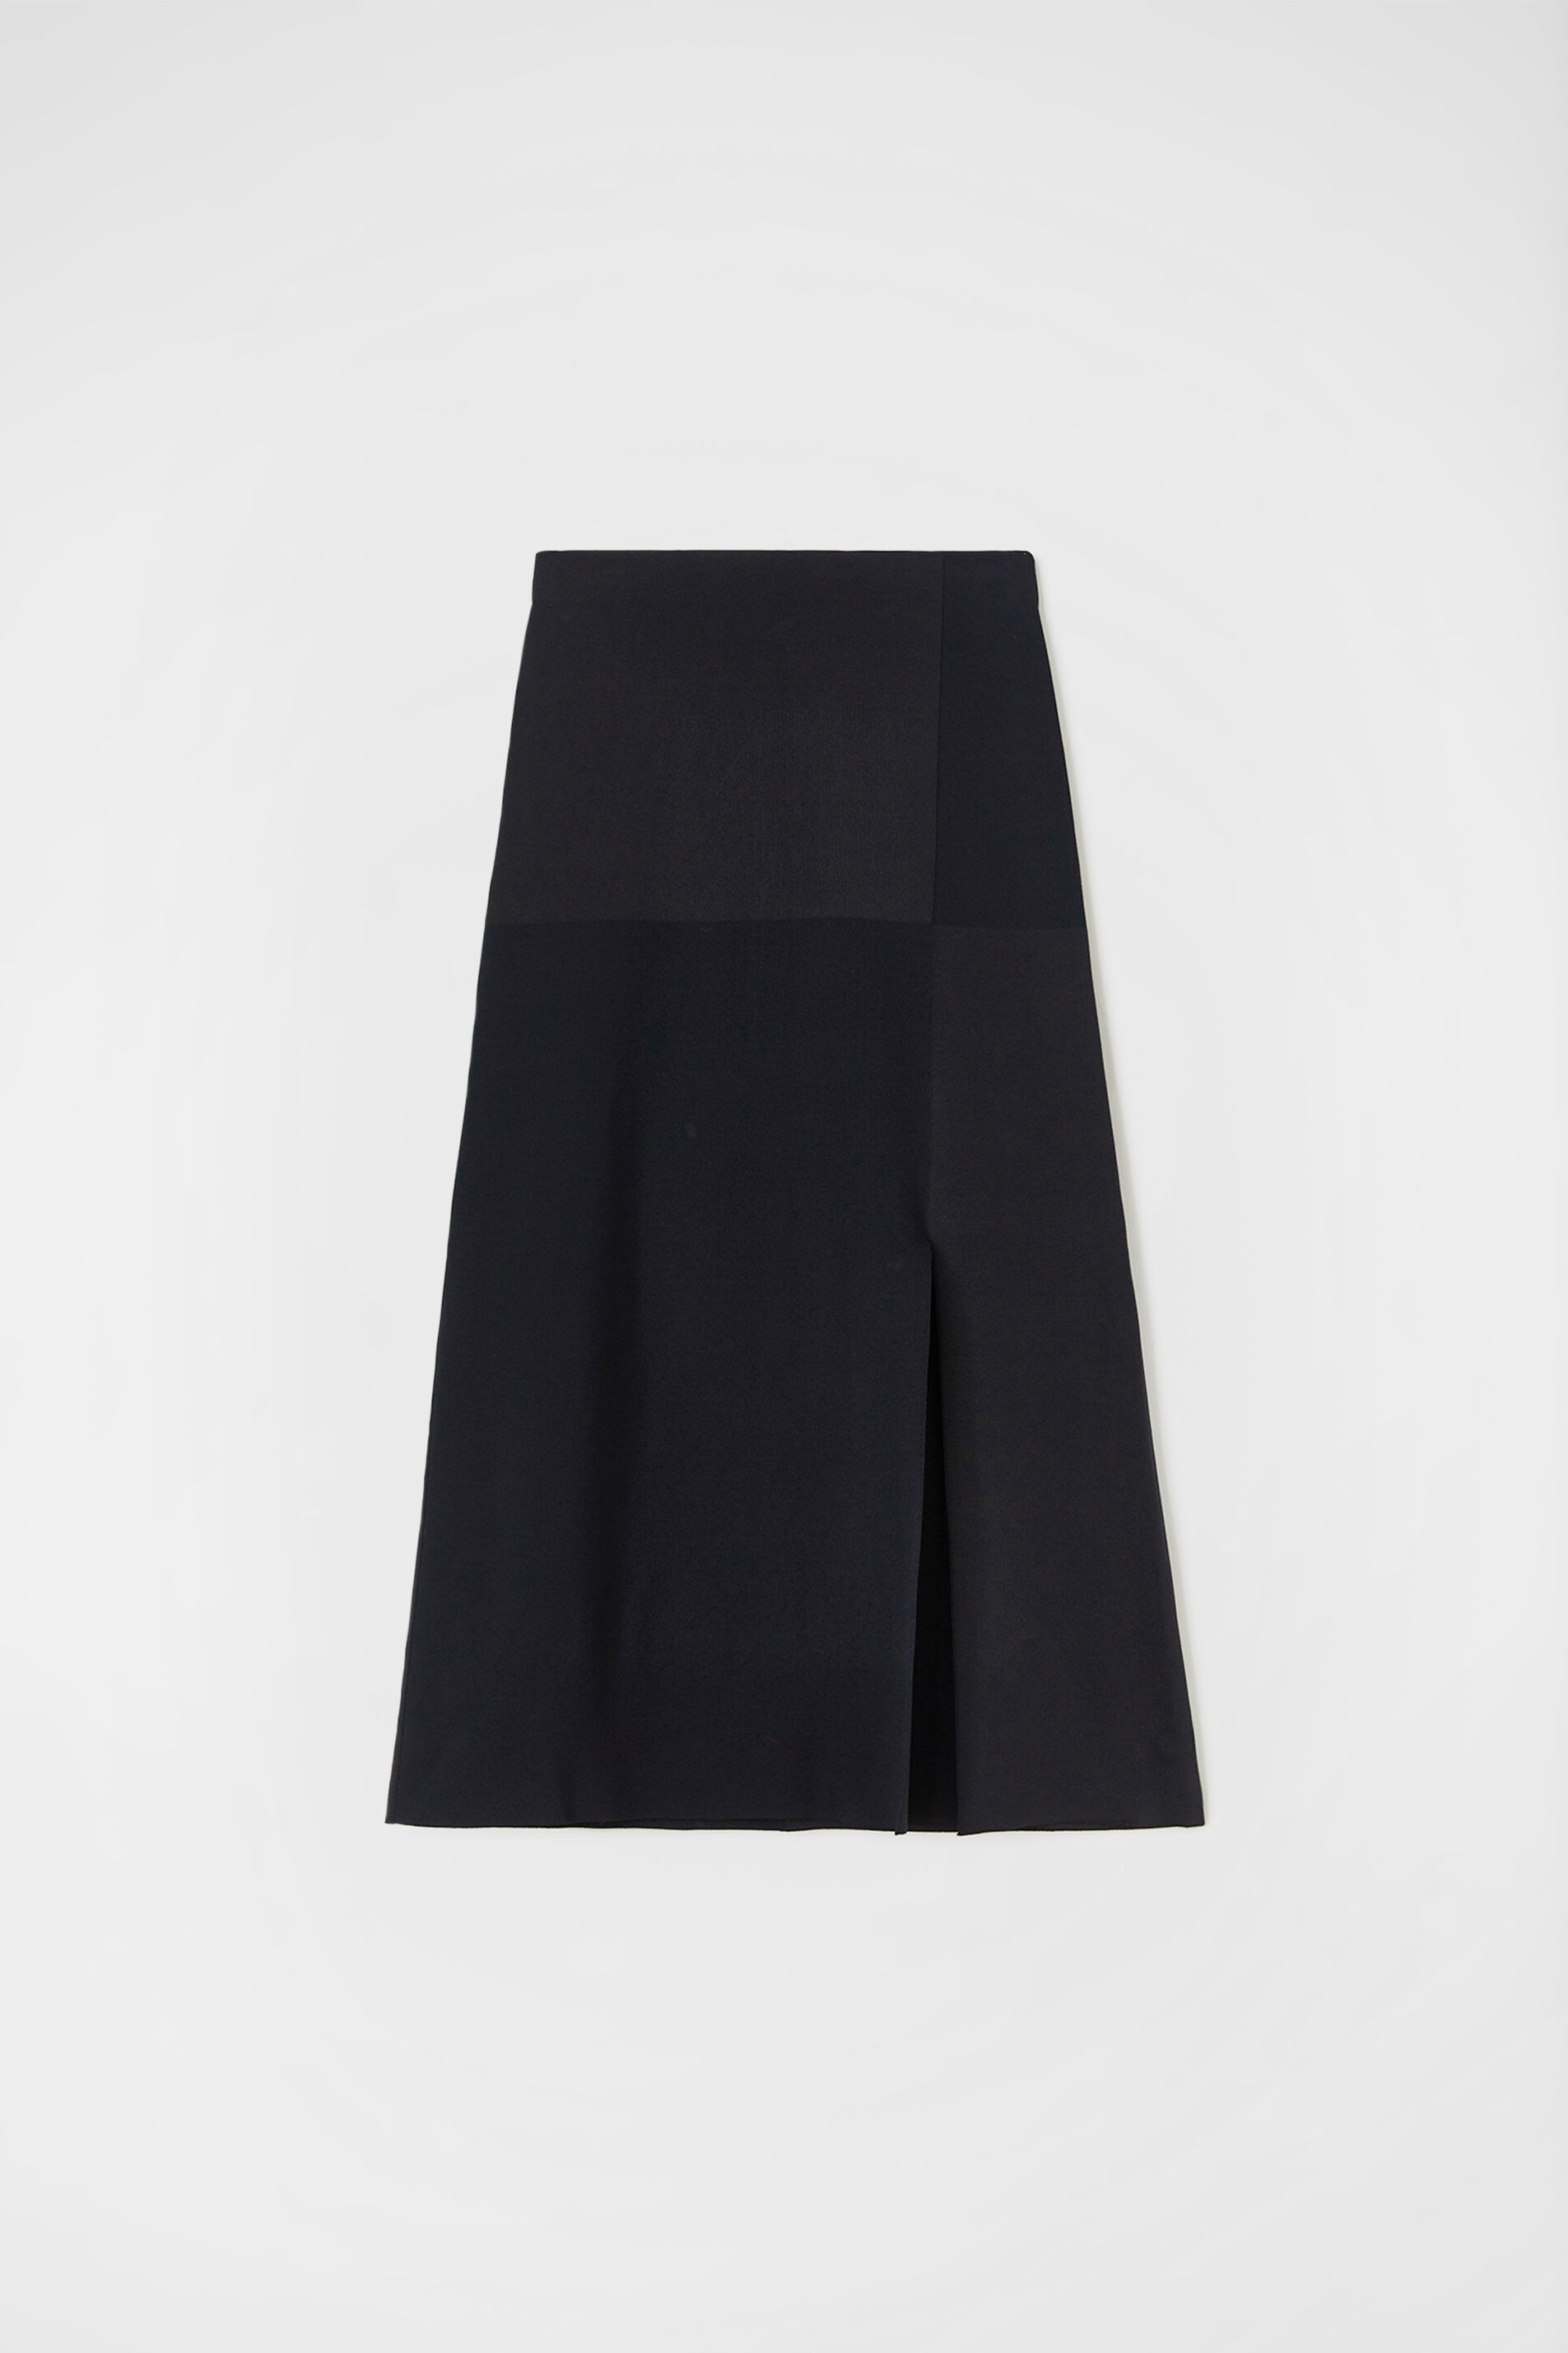 Skirt, black, large